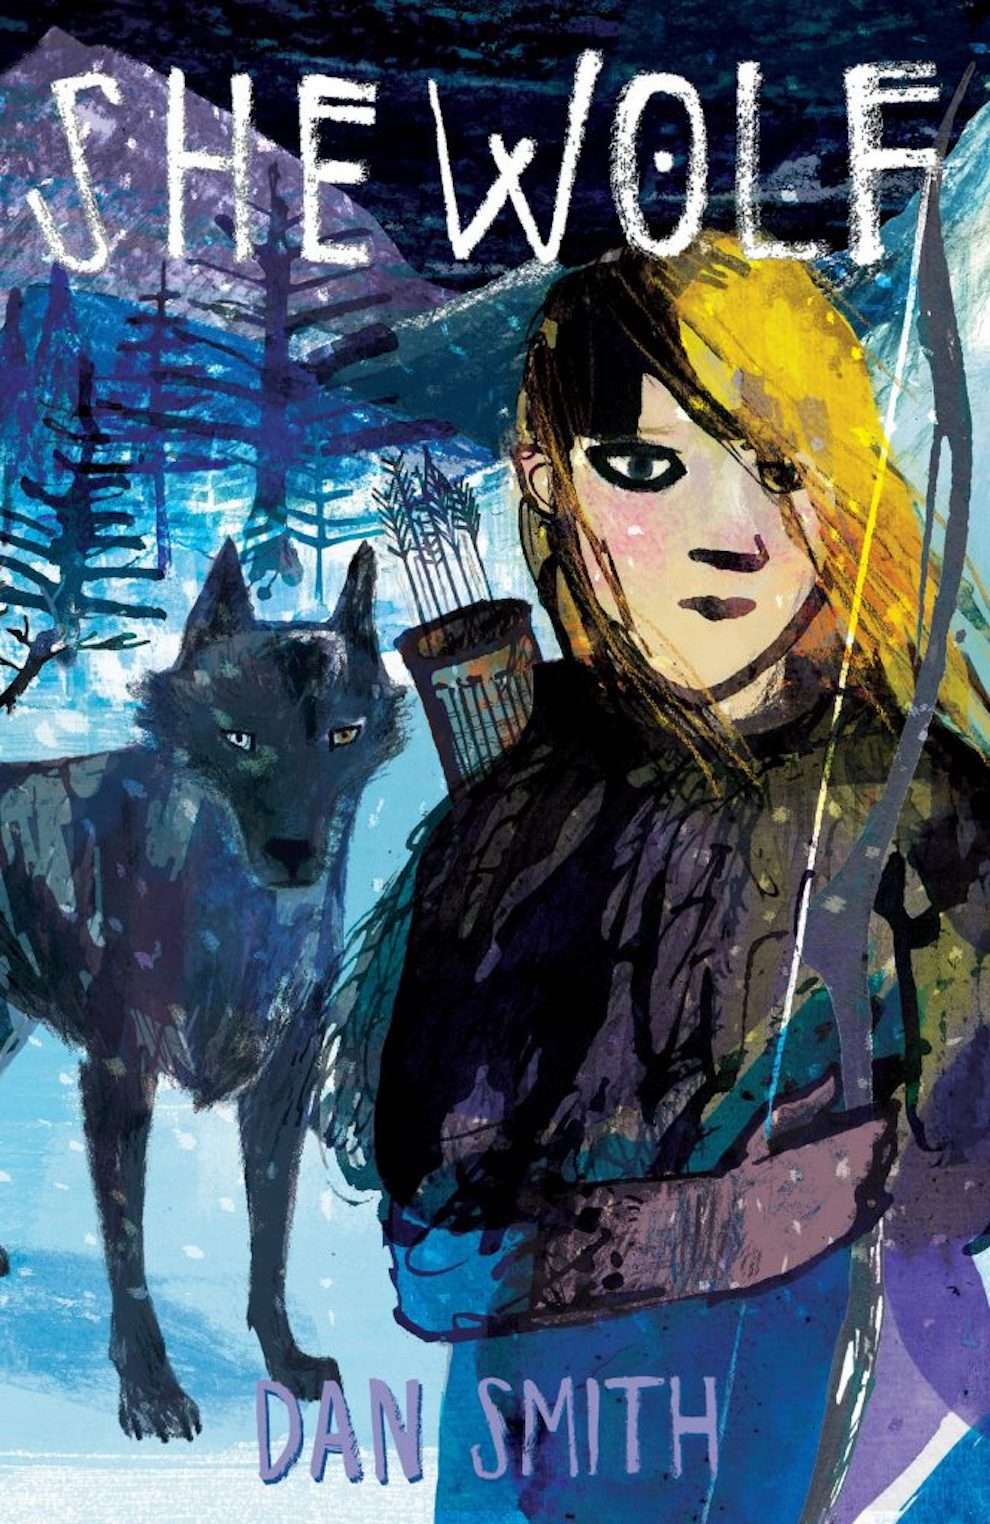 Jill Calder, Hand drawn book cover of a girl and a wold in a snowy scenery